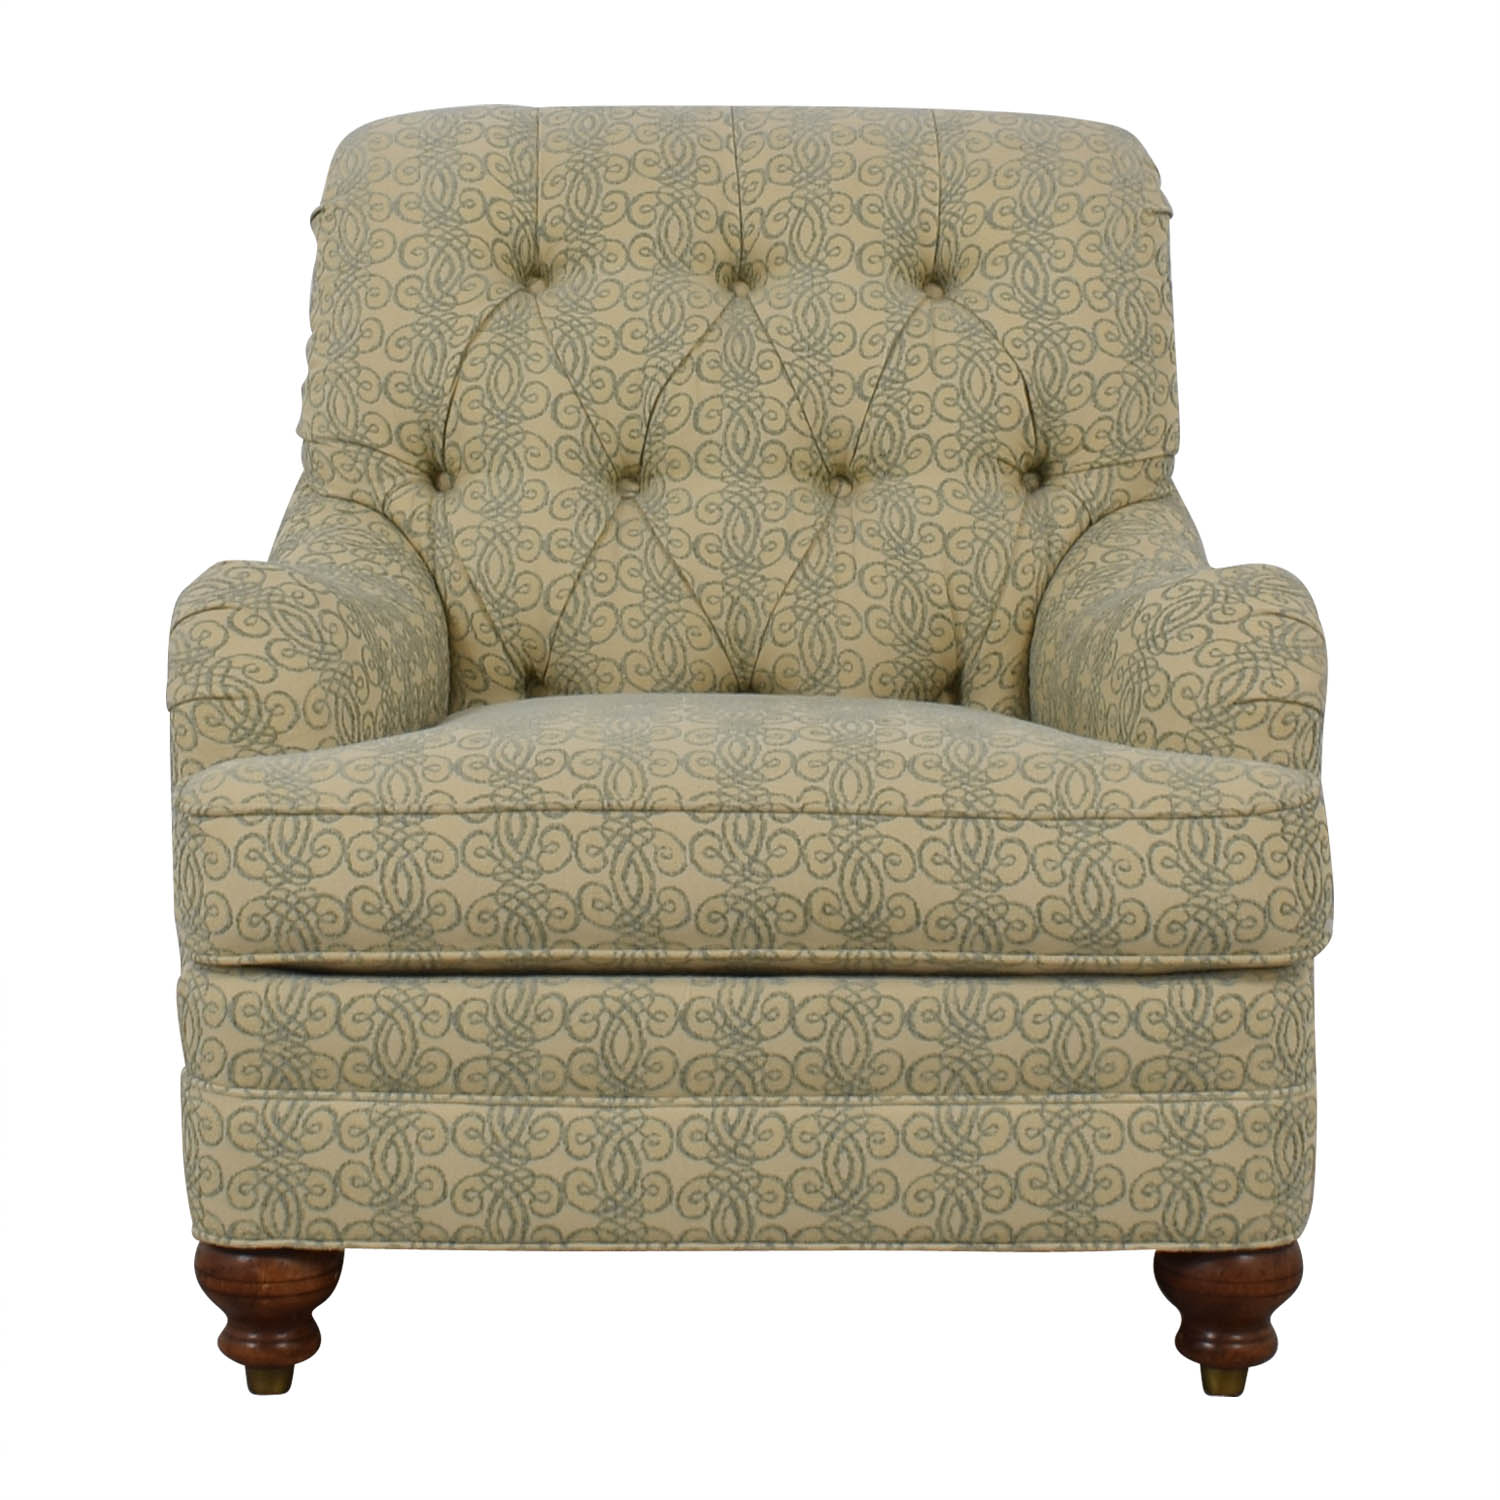 buy Ethan Allen Mercer Tufted Accent Chair Ethan Allen Accent Chairs